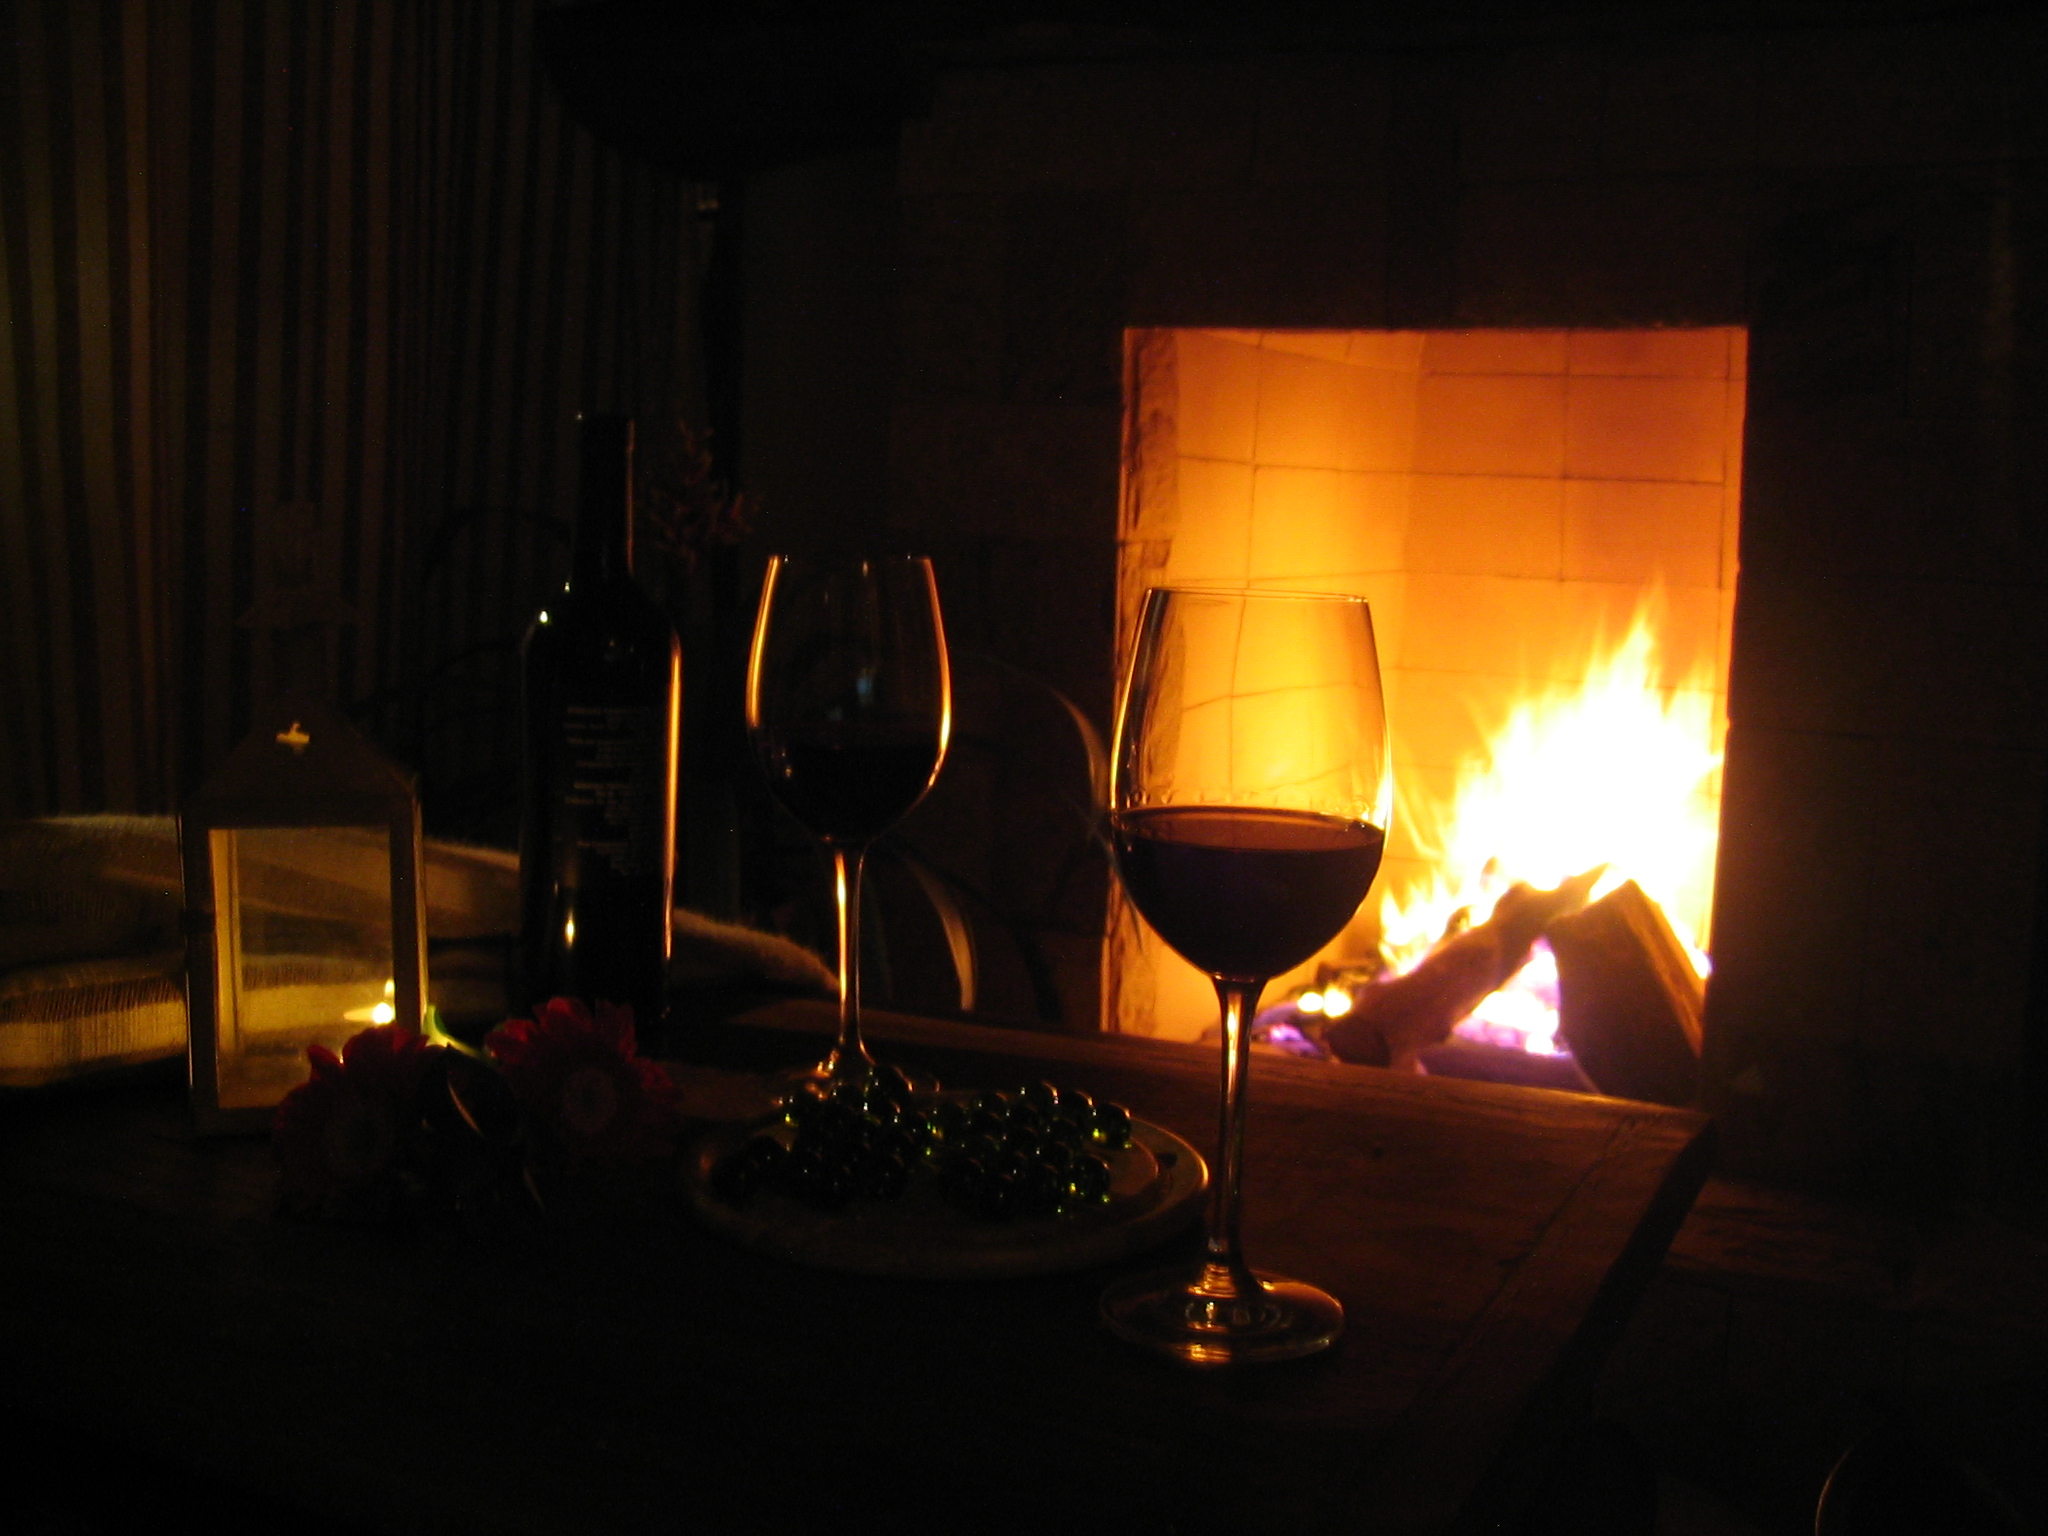 Romantic date ideas for poor weather